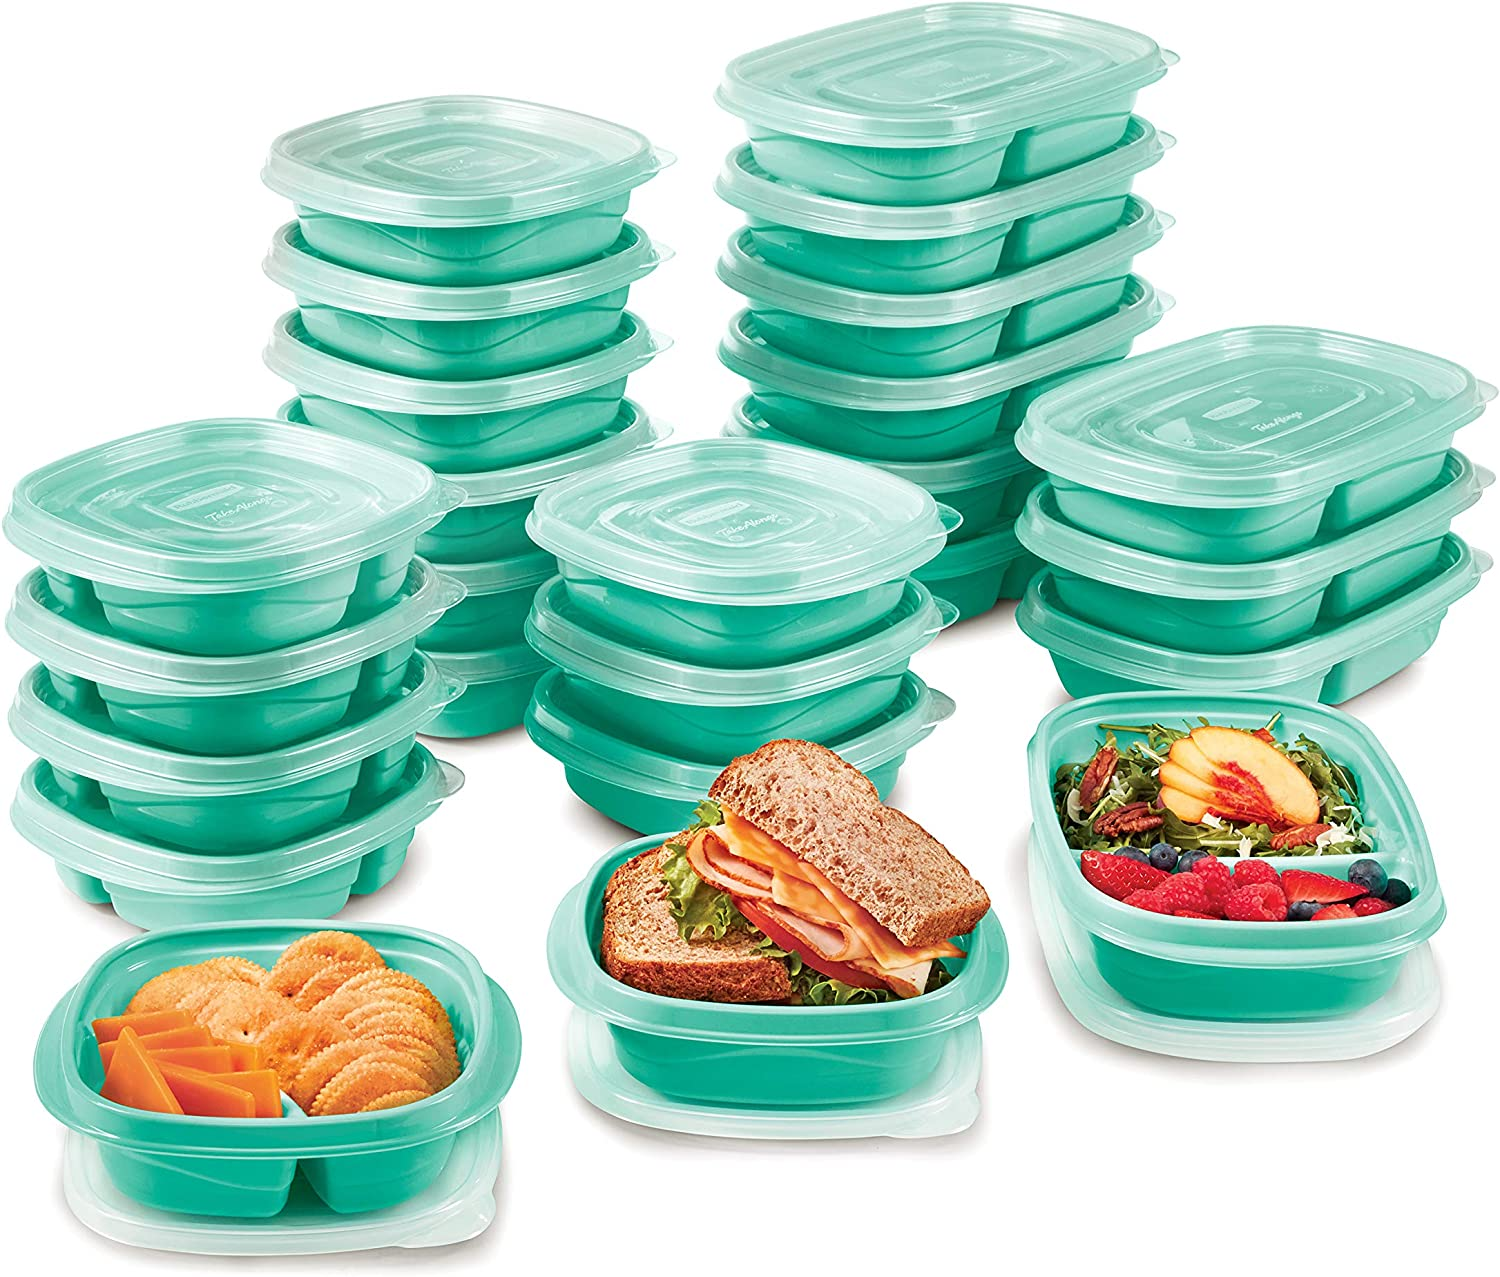 Rubbermaid TakeAlongs On The Go Food Storage and Meal Prep Containers, Set of 25 (50 Pieces Total), Teal Splash